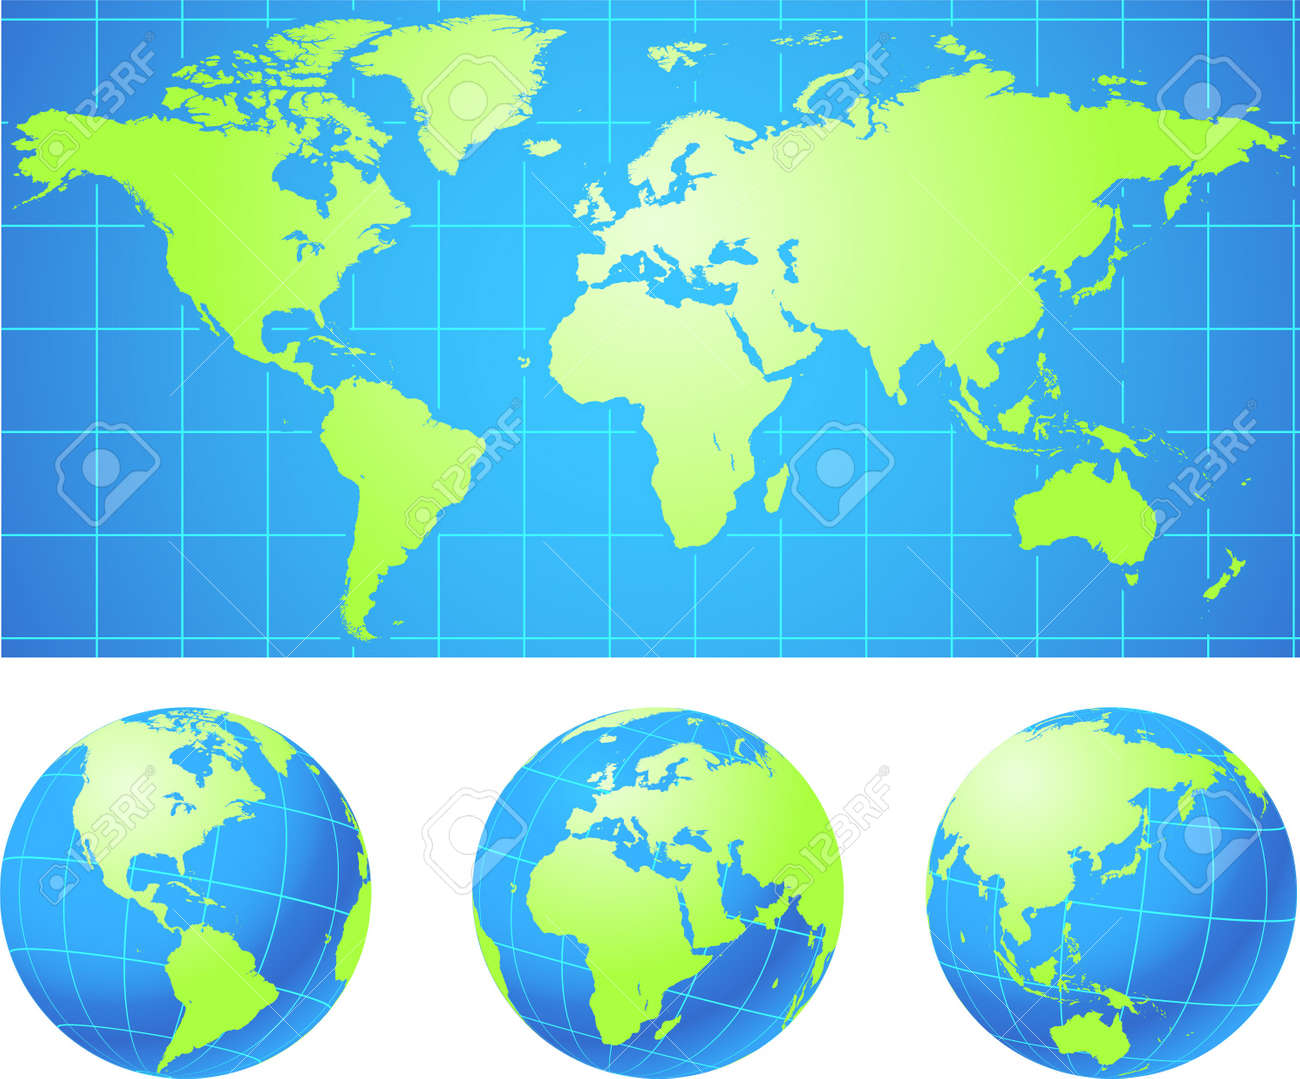 World map and globesOriginal Vector IllustrationGlobes and.. on t and o map, maps and tools, raised-relief map, maps and tables, topographic map, maps and directions, maps and travel, maps and compasses, maps and diagrams, maps and books, maps and models, maps and food, maps and scales, maps and water, maps and telescopes, maps and pins, maps and atlases, maps and flags, maps and graphs, maps and charts, world map, maps and calendars, maps and prints, maps and gps,